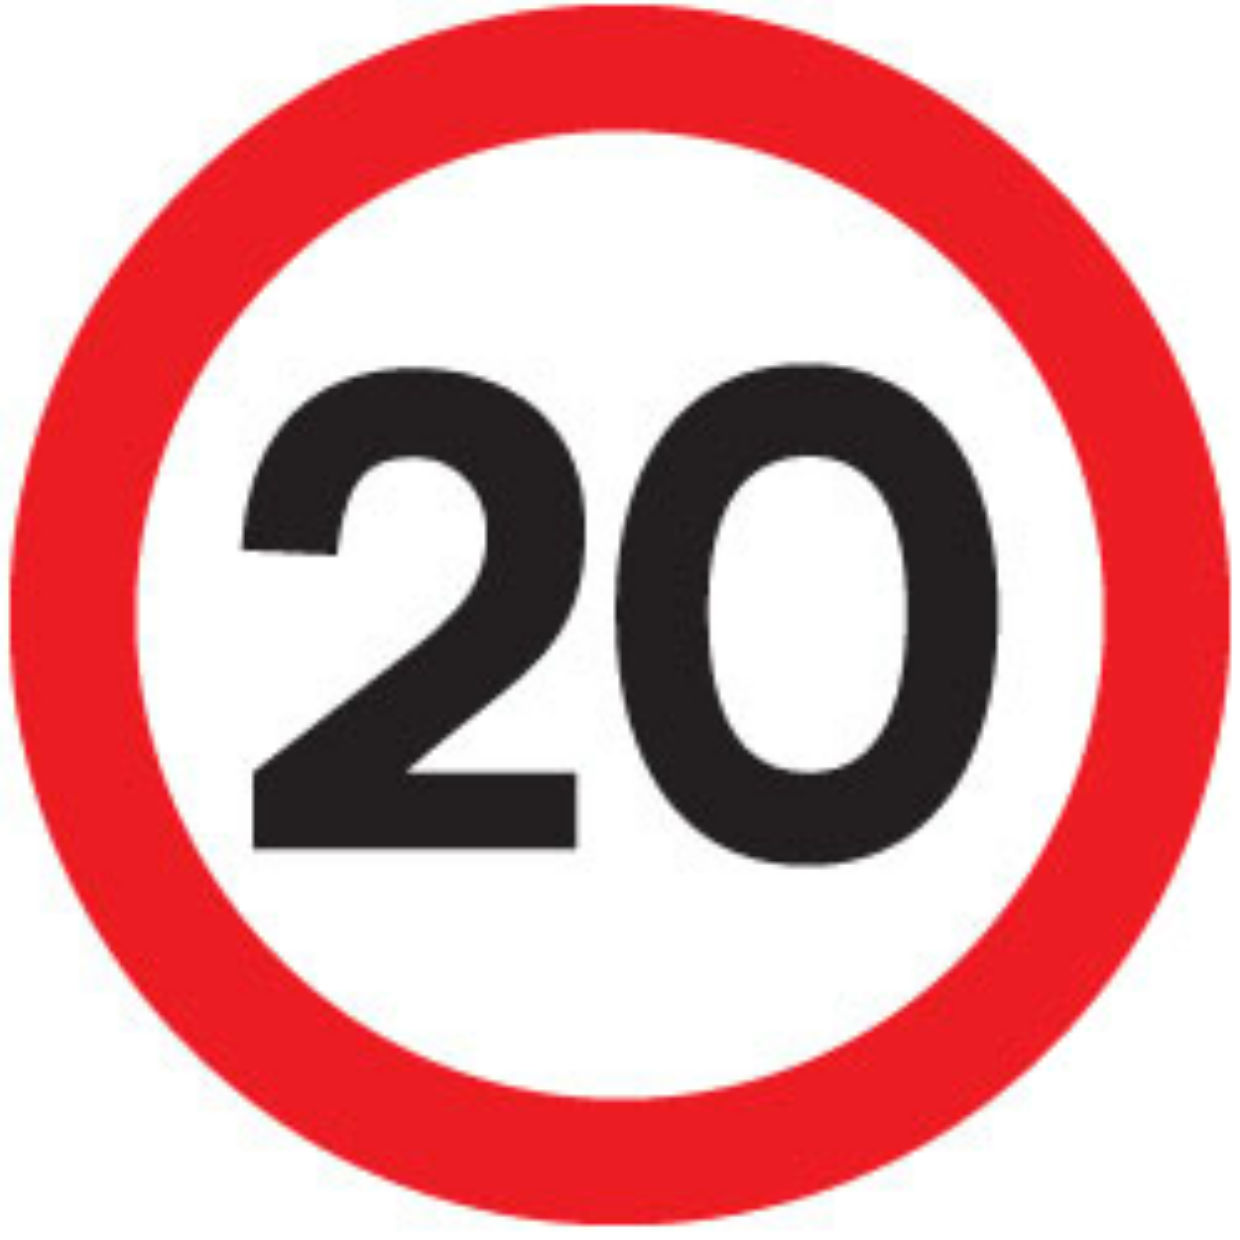 20mph speed limits to be extended across northern part of York